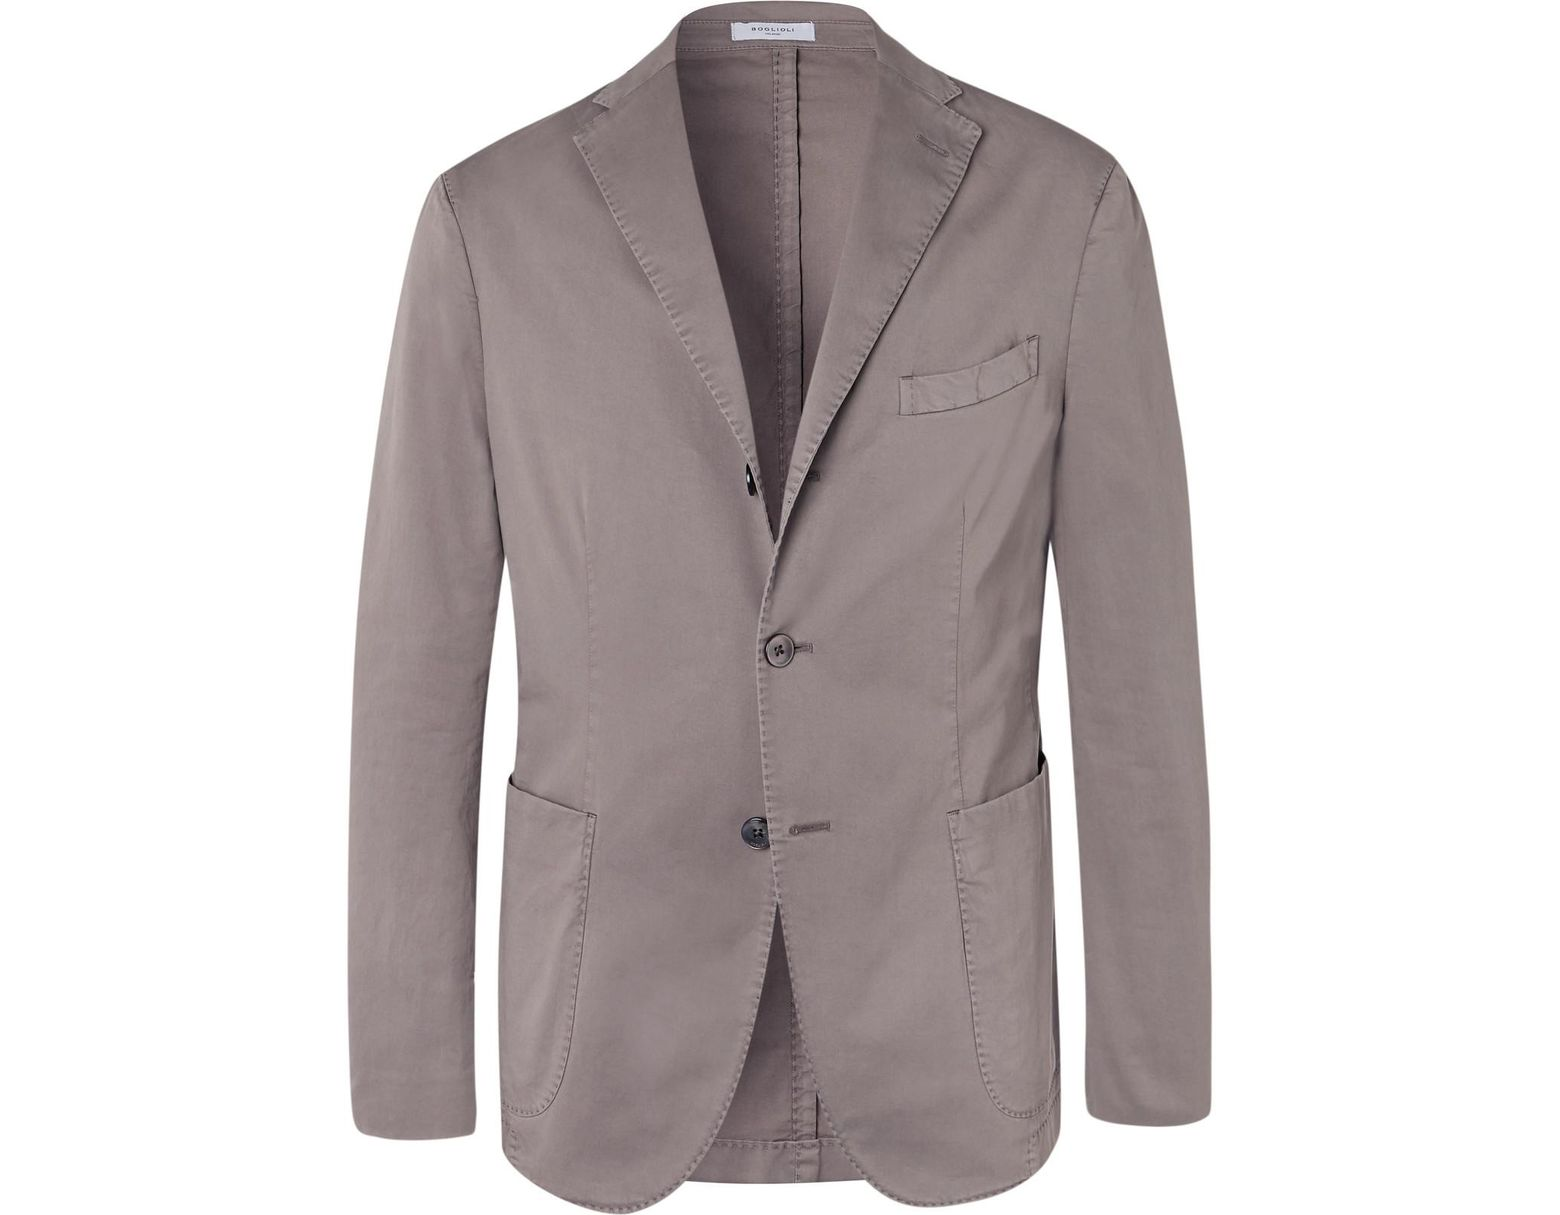 7bd38f361 Boglioli Stone K-jacket Slim-fit Unstructured Stretch-cotton Twill Suit  Jacket for Men - Lyst